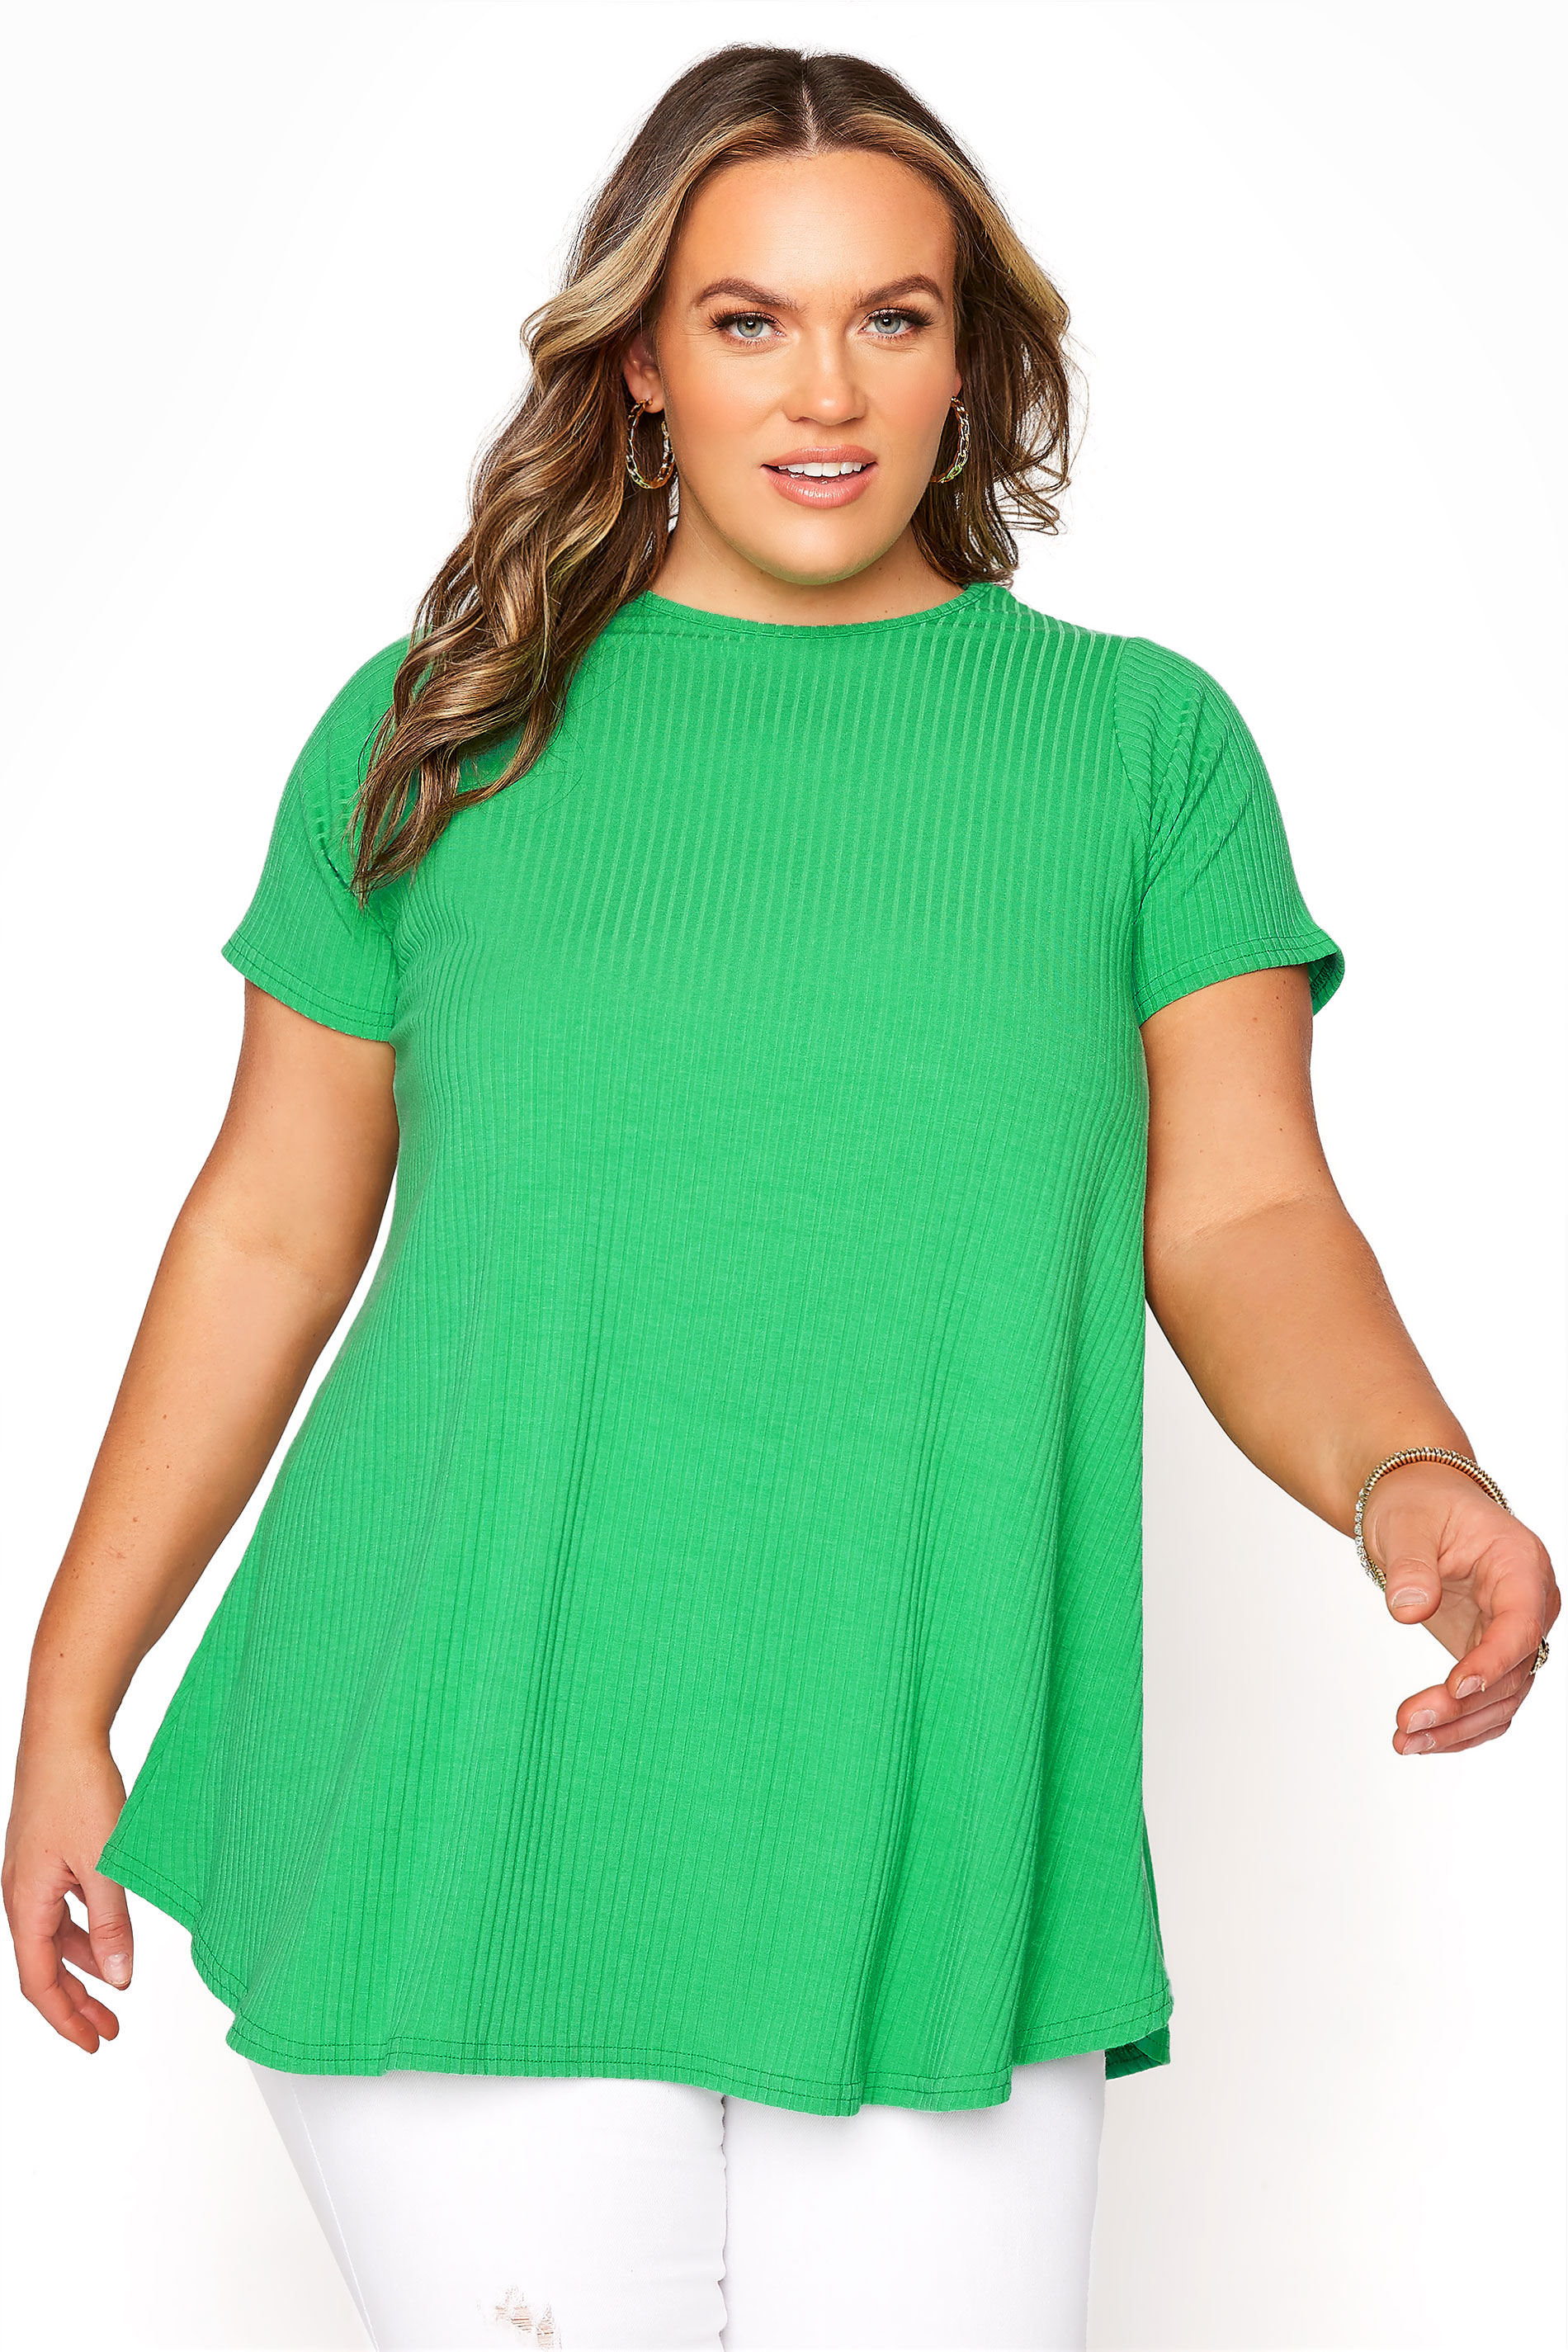 LIMITED COLLECTION Emerald Green Ribbed Short Sleeve T-Shirt_A.jpg